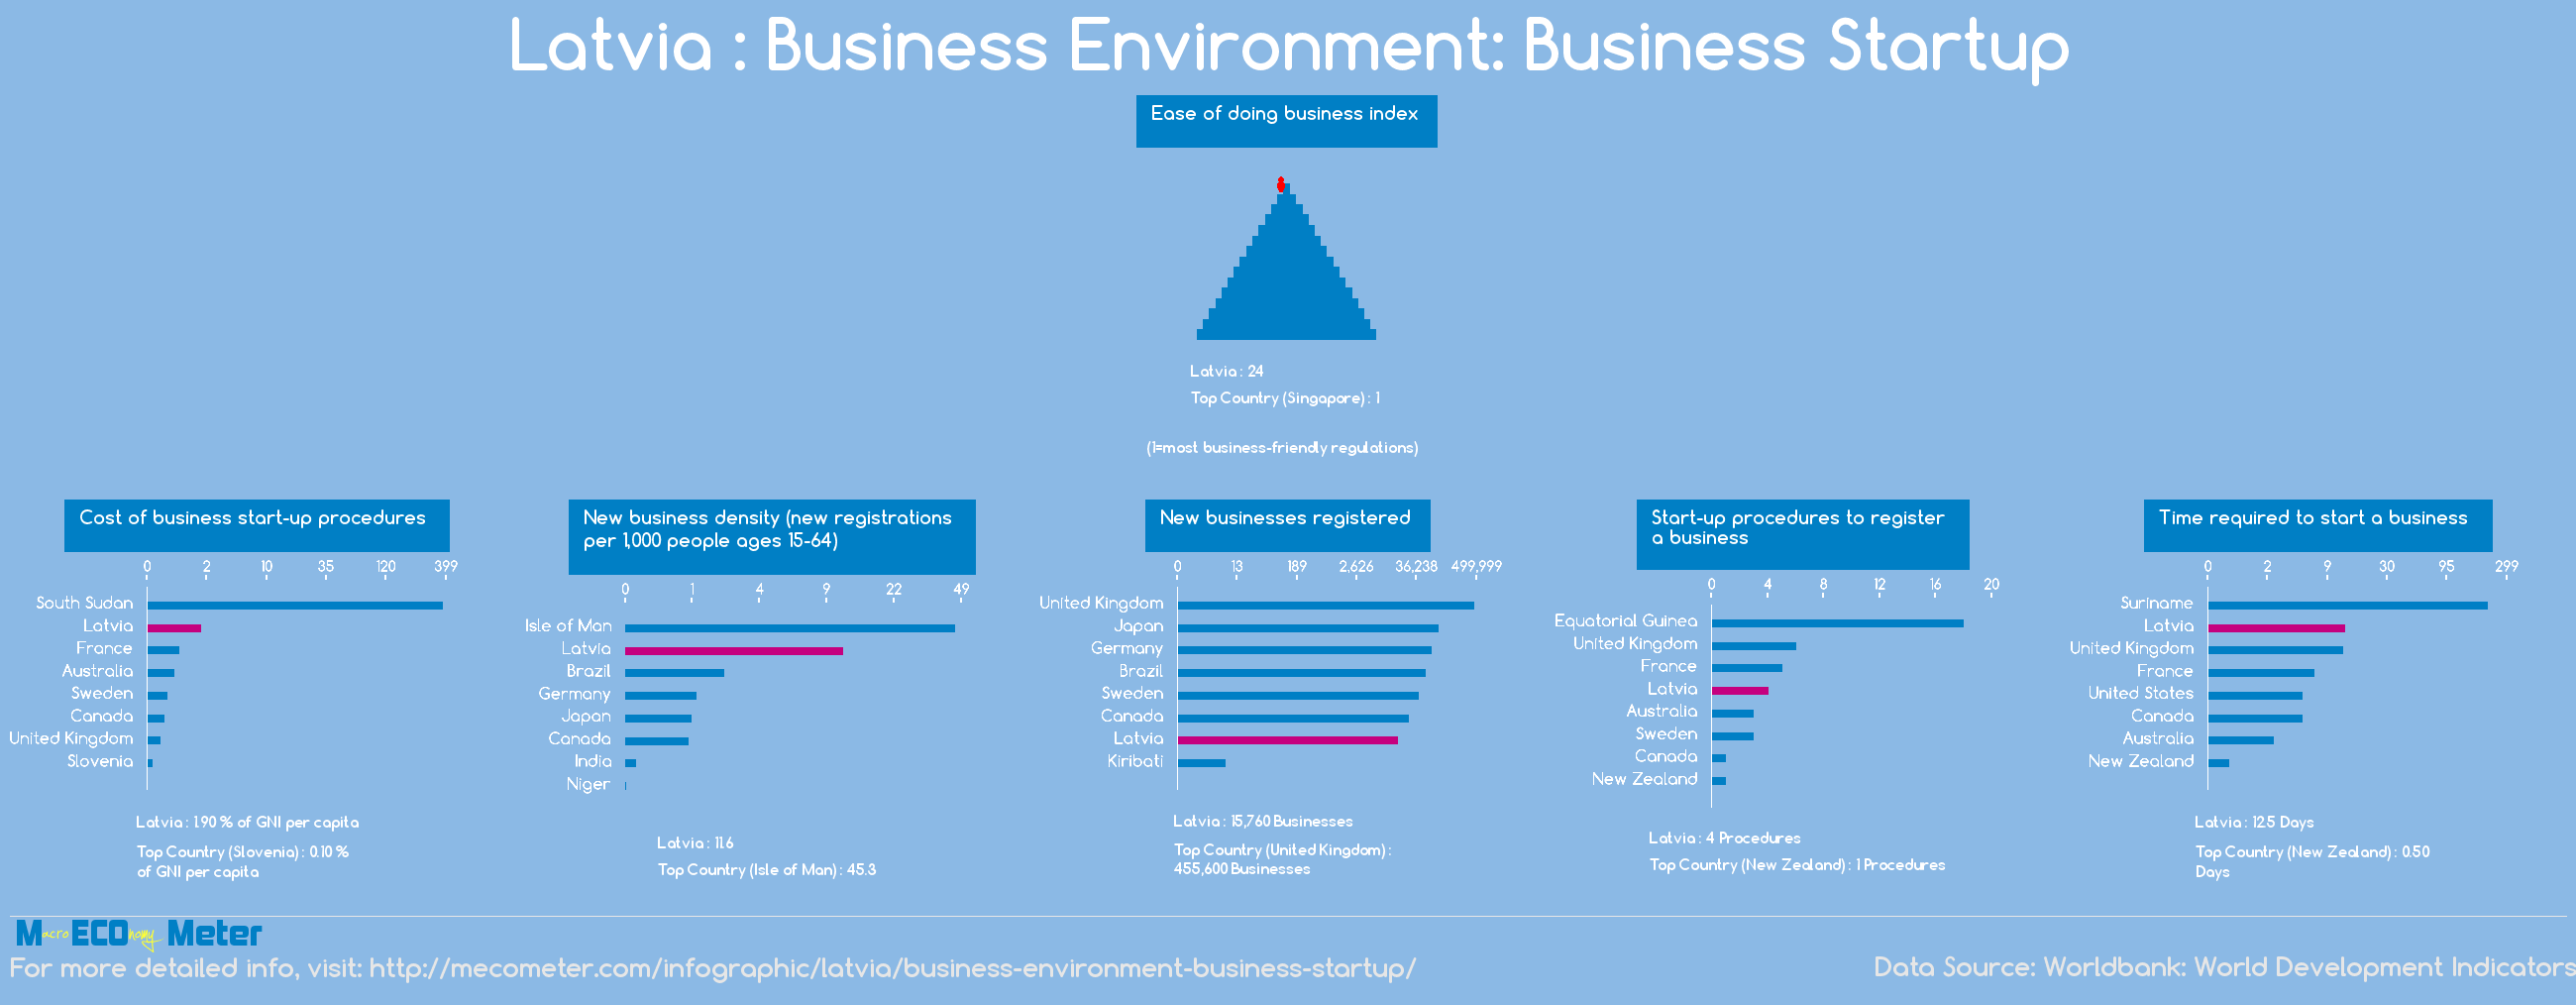 Latvia : Business Environment: Business Startup